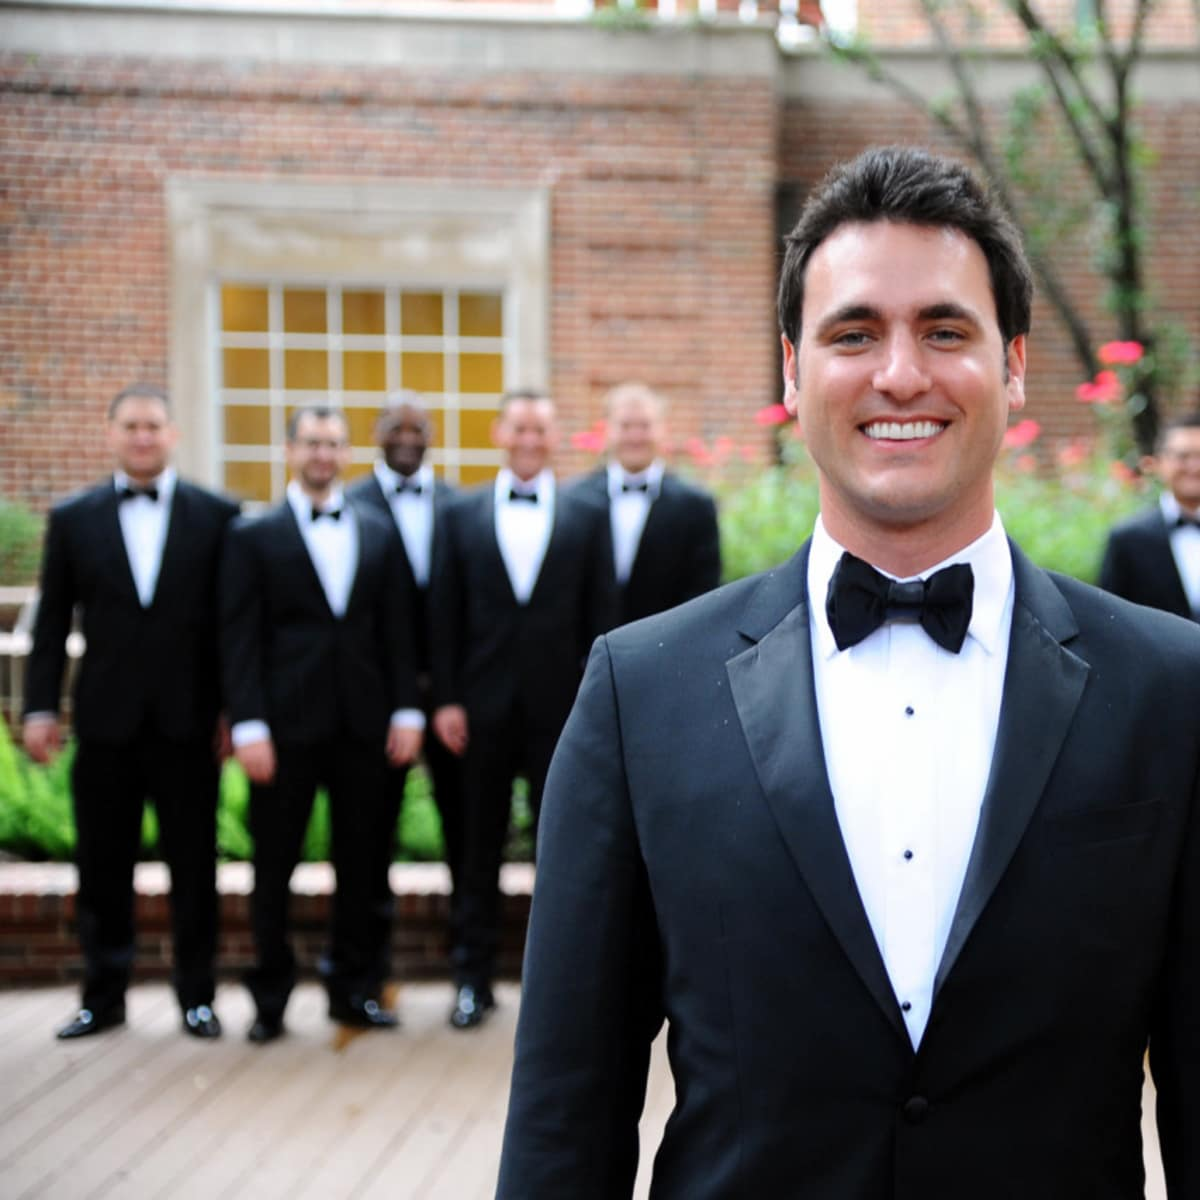 Houston, Chita Johnson wedding, June 2016, the groom and his wedding party